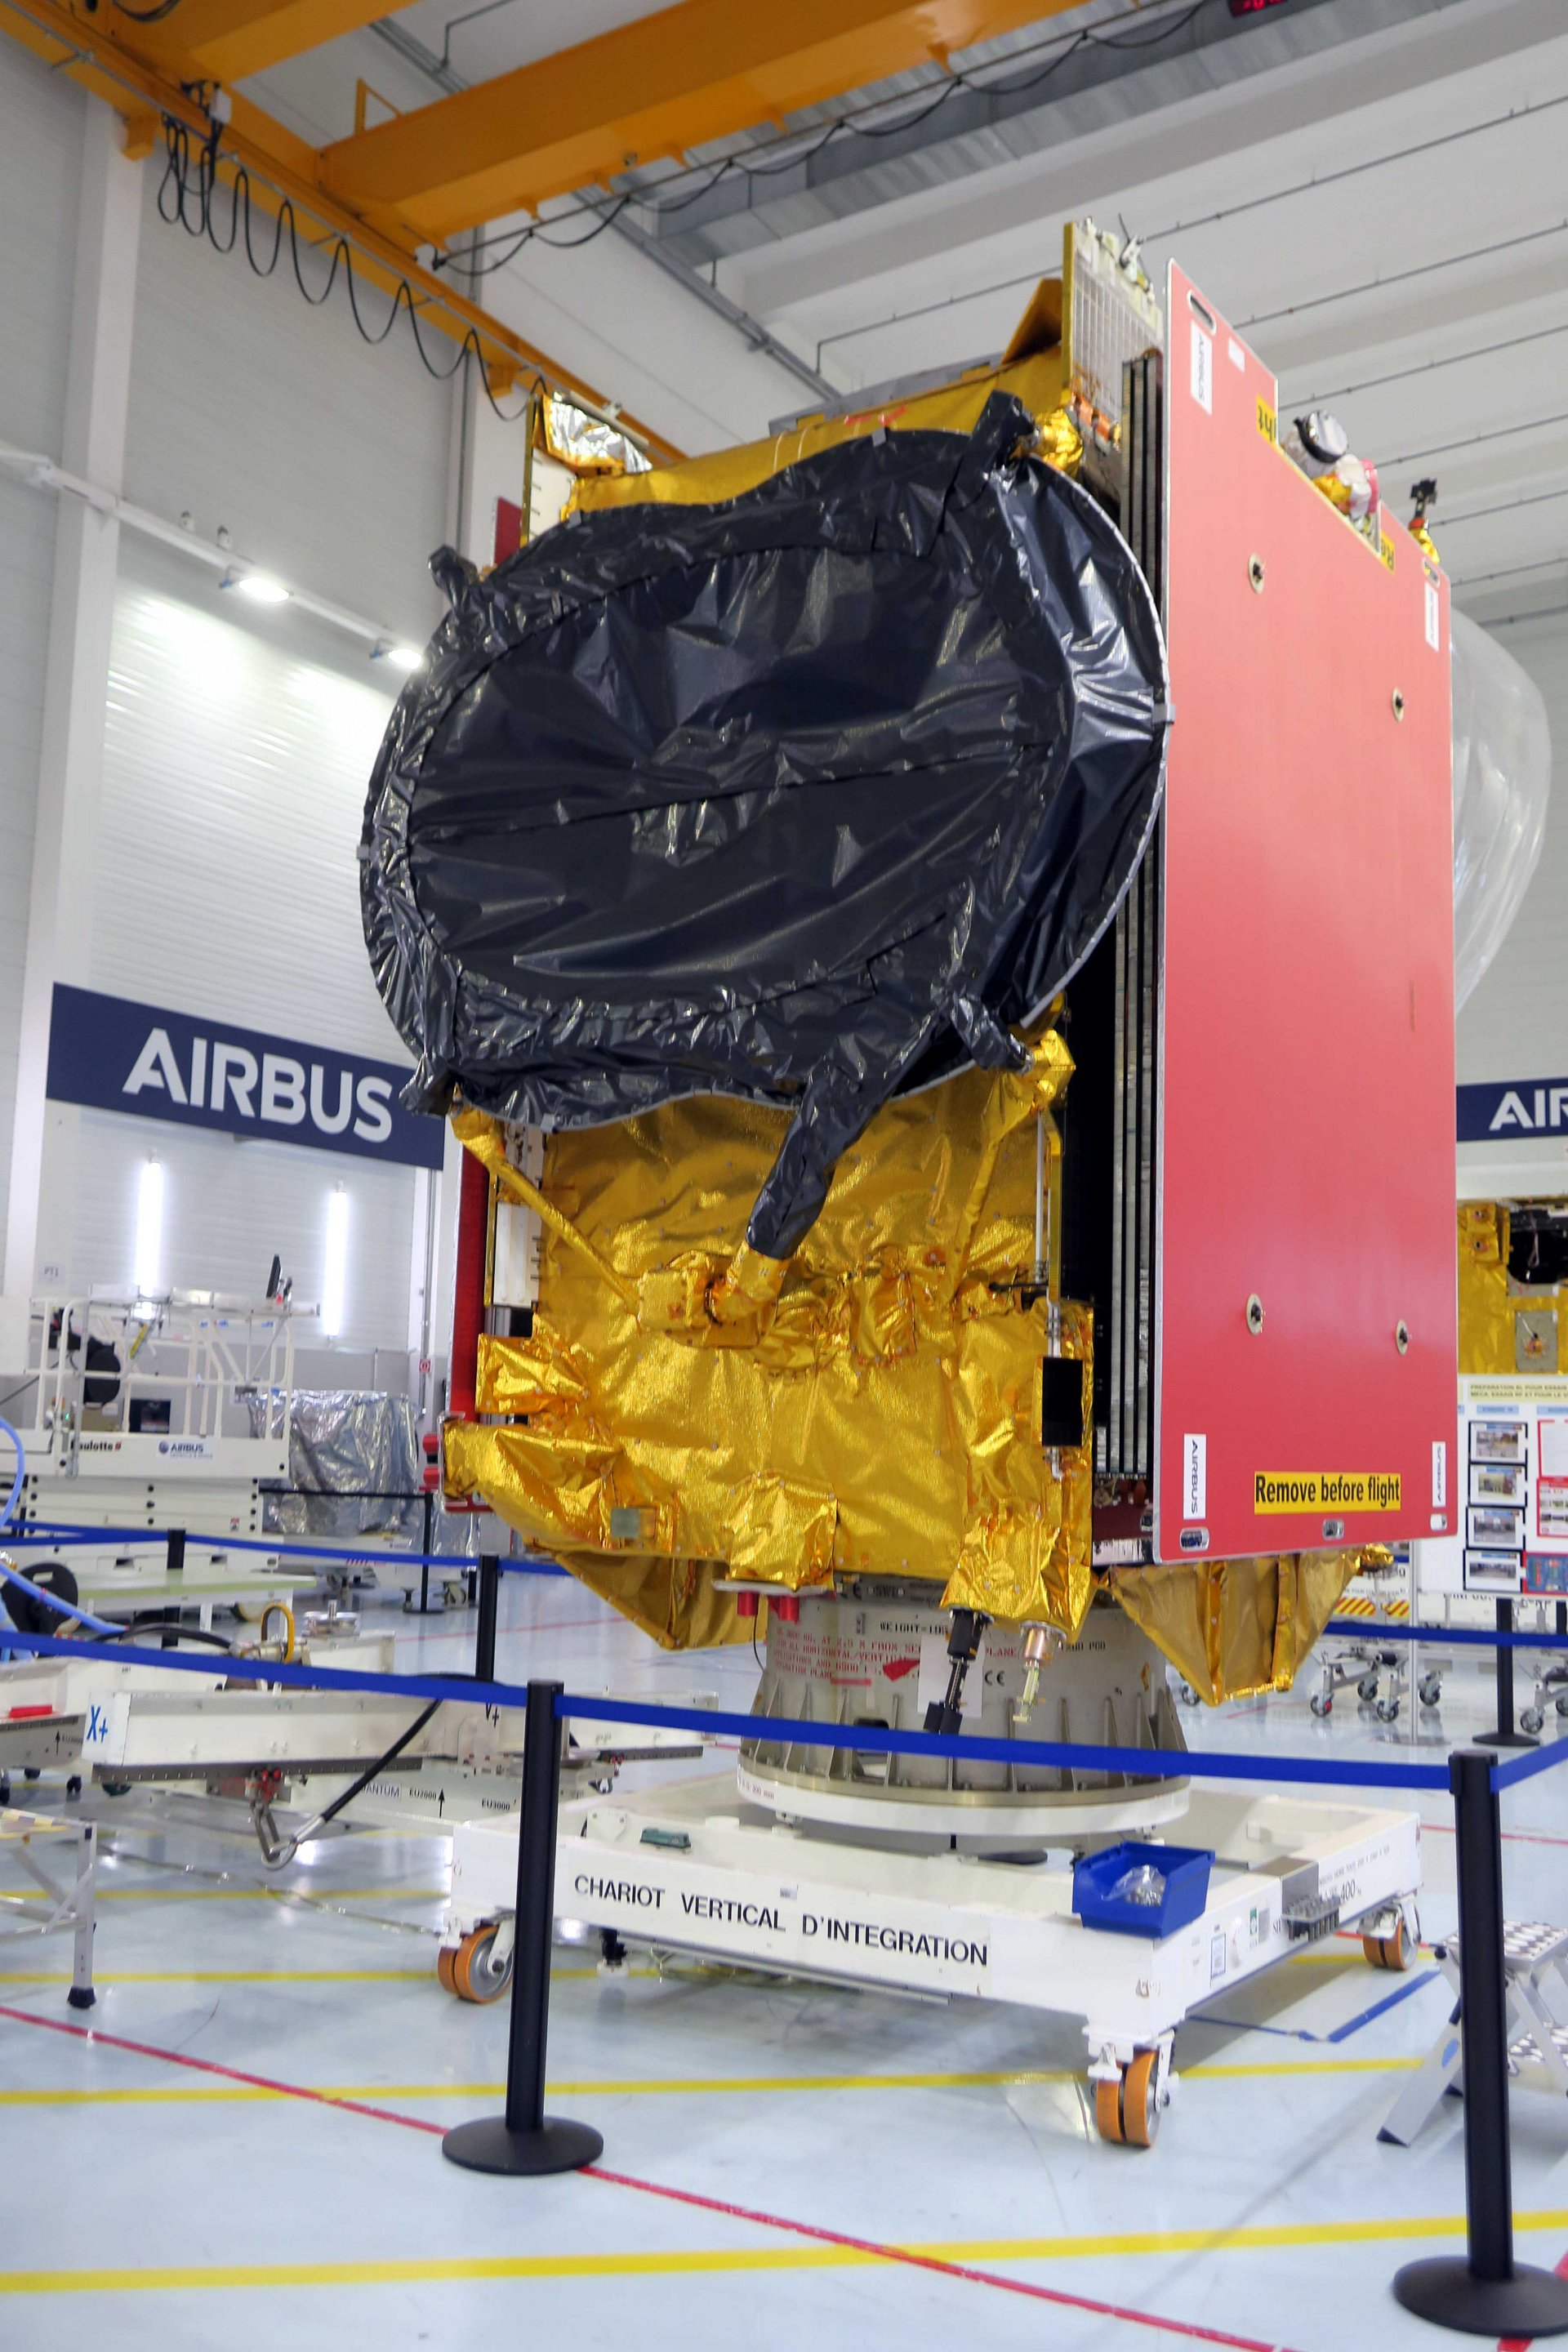 The EUTELSAT QUANTUM satellite is a revolutionary step forward for commercial satellites, offering very high customisation and flexibility. It will supply services with unprecedented in-orbit reconfigurability in coverage, frequency and power, allowing complete mission rehaul, at any orbital position.